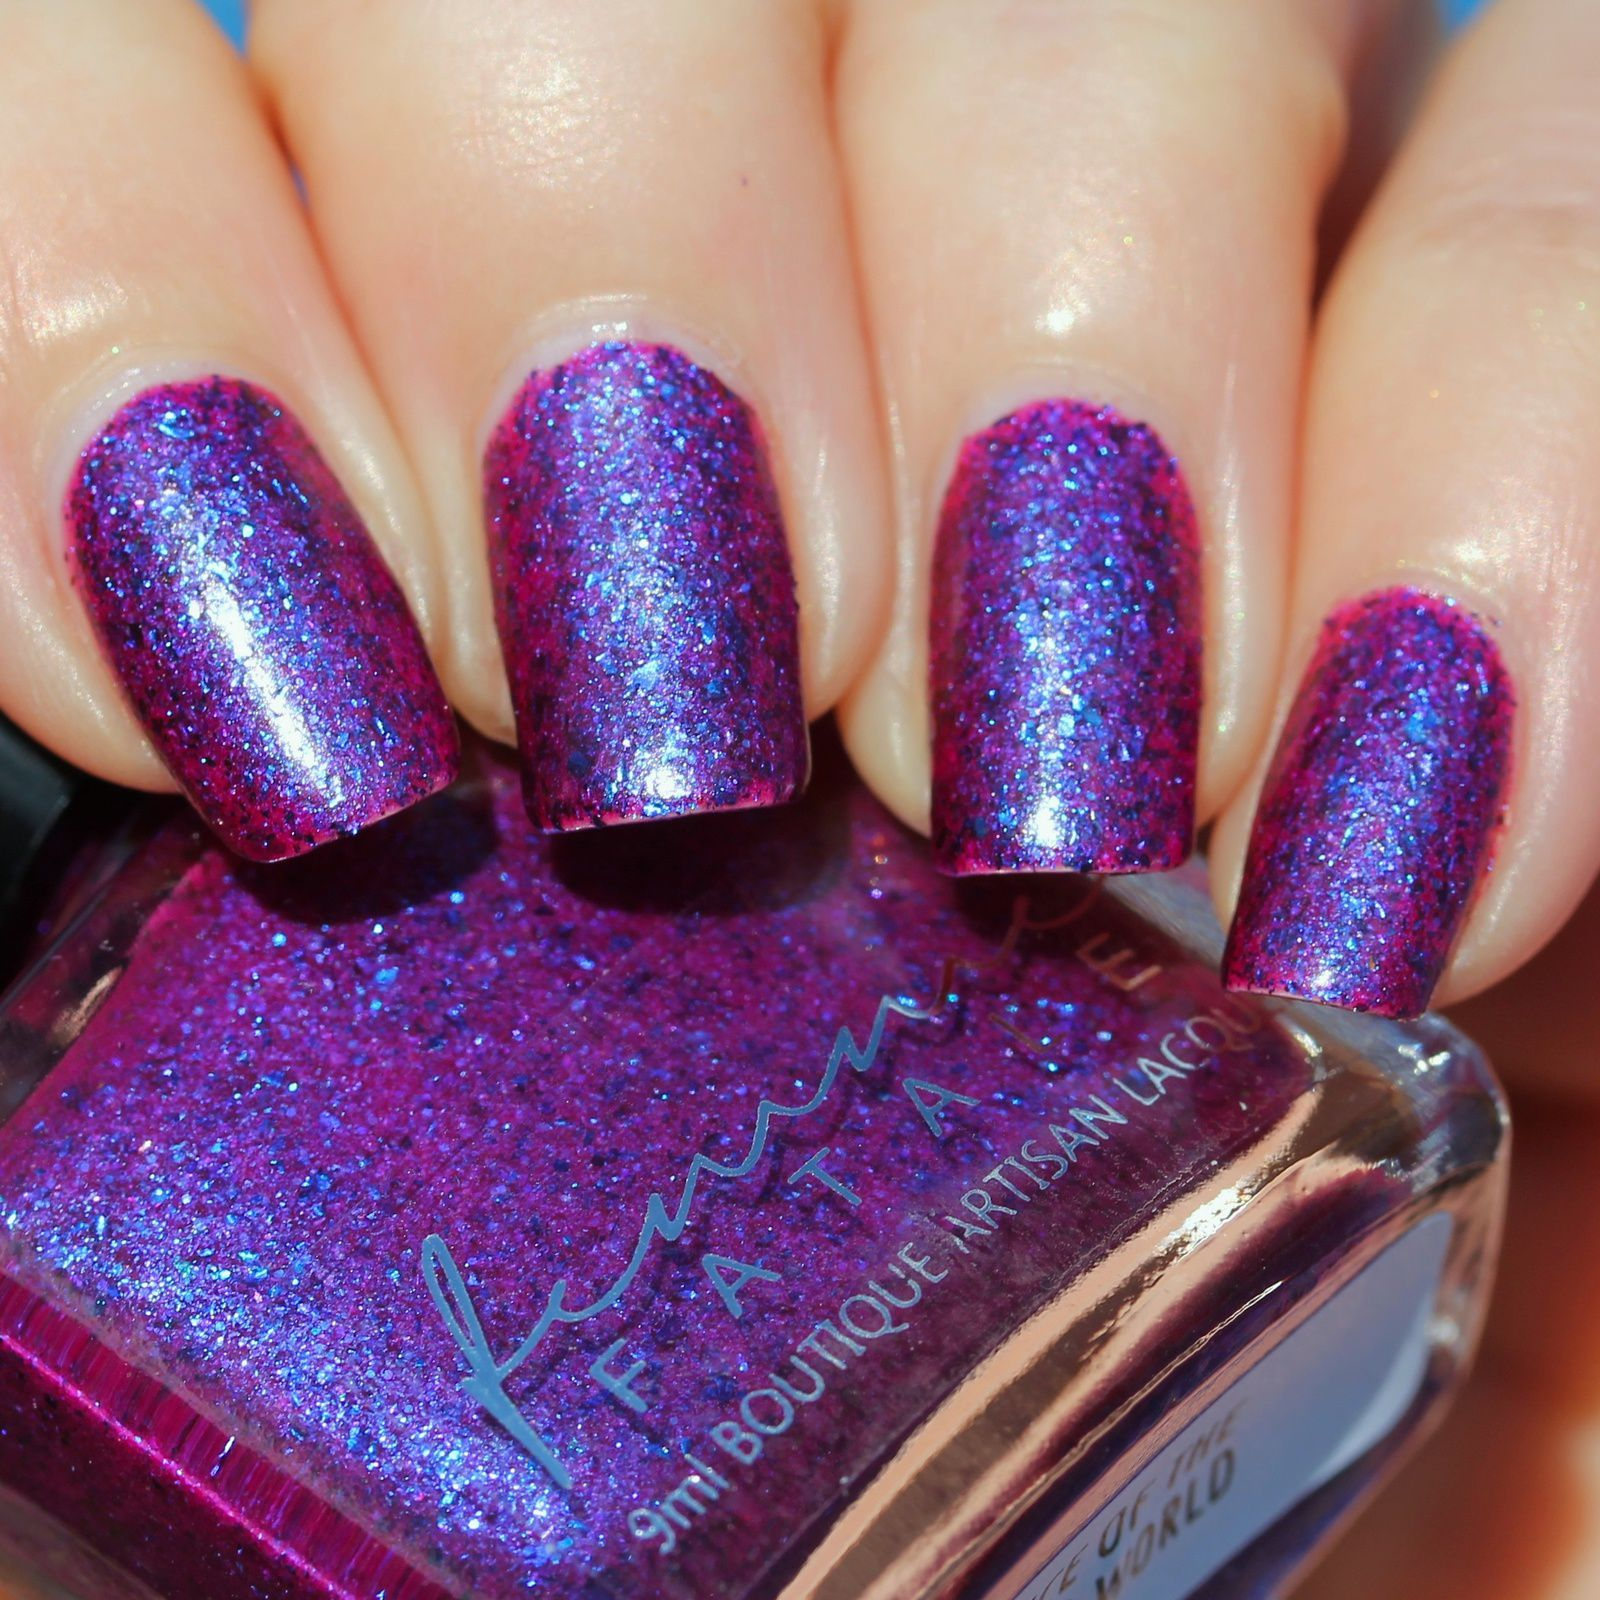 Femme Fatale Cosmetics - Voice of the Outer World (2 coats, no top coat, Thermal)